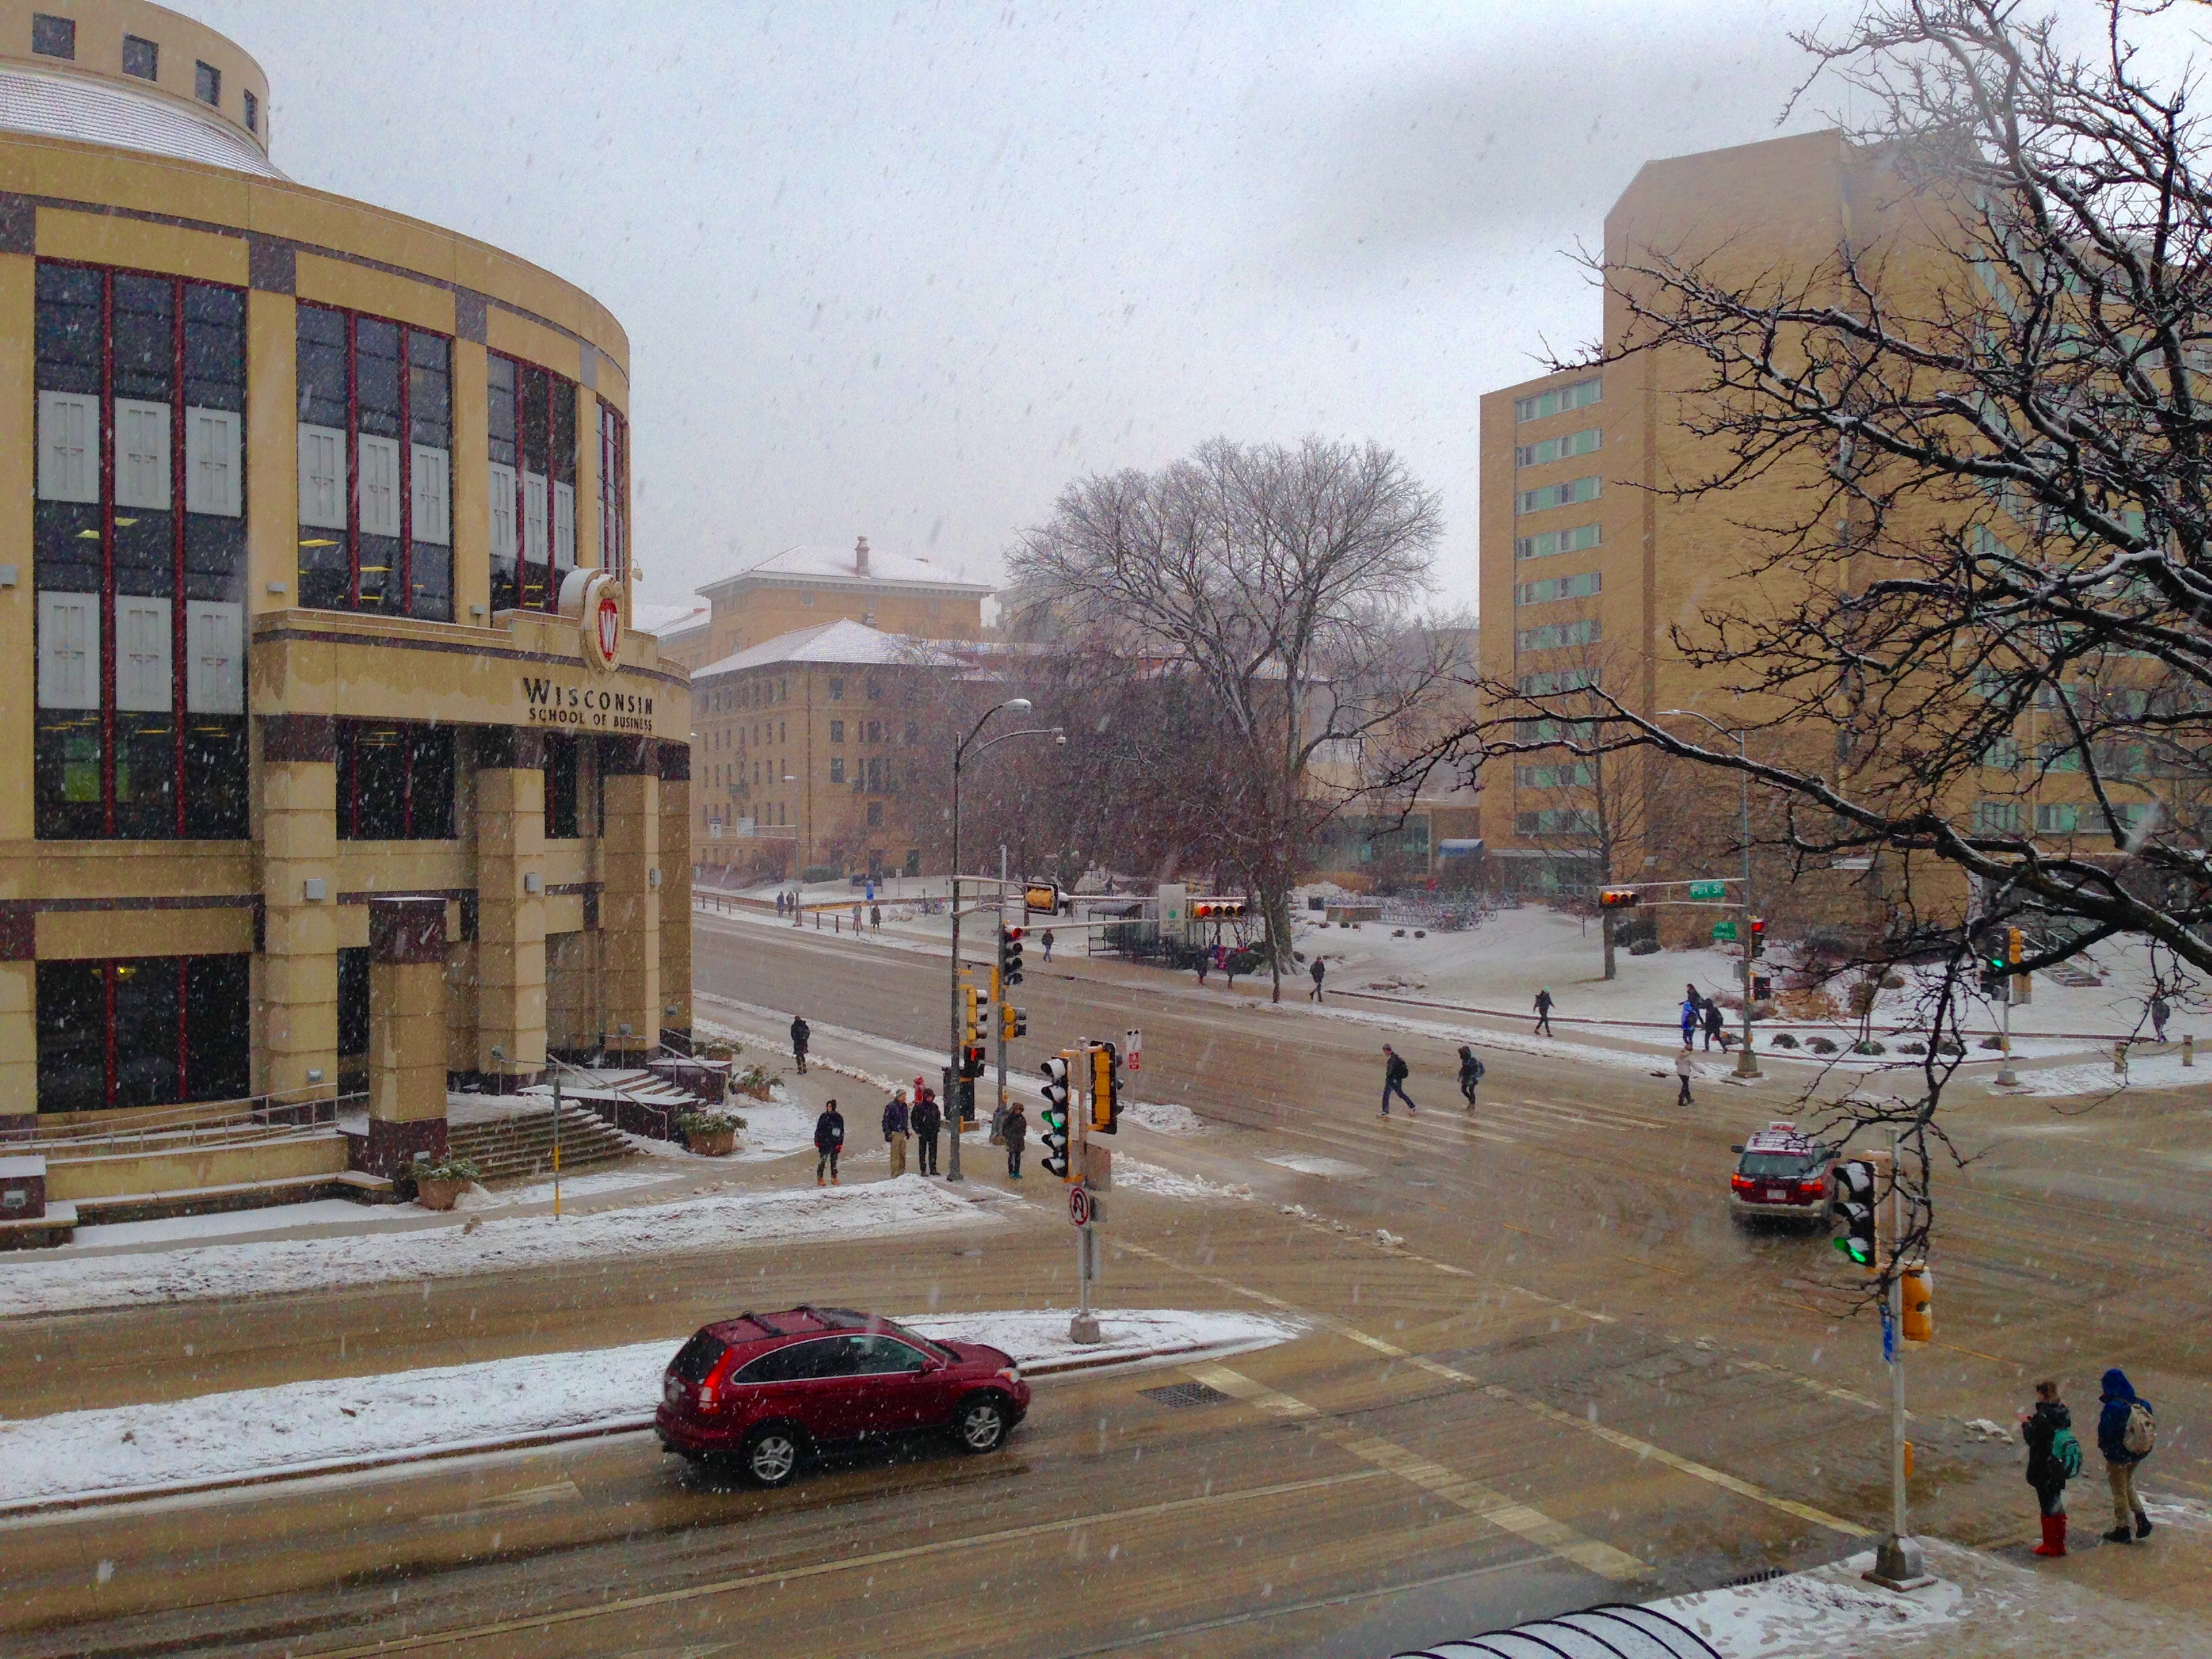 Thompson: Lawmakers Warned Against Tuition Increases In UW Budget